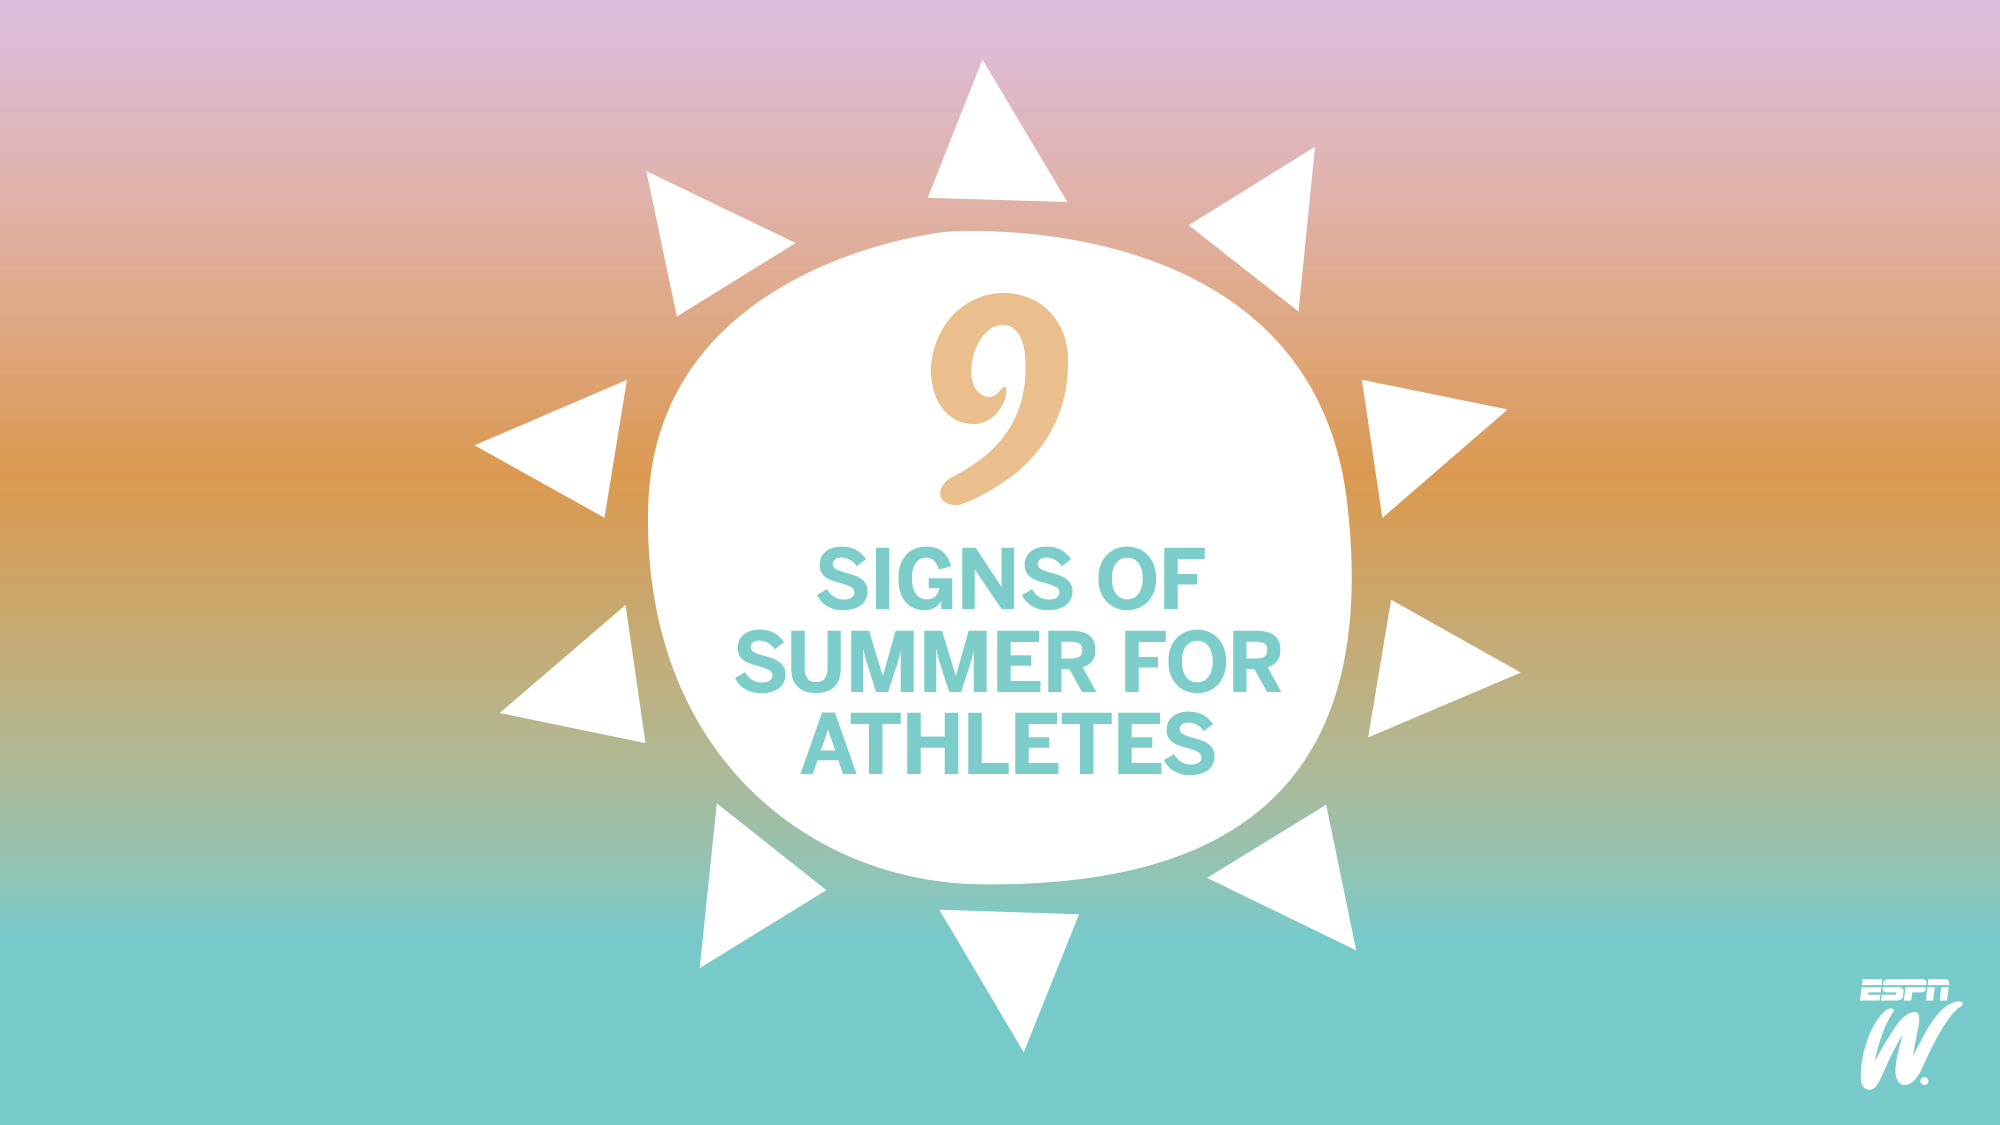 9 Athlete Summer Signs